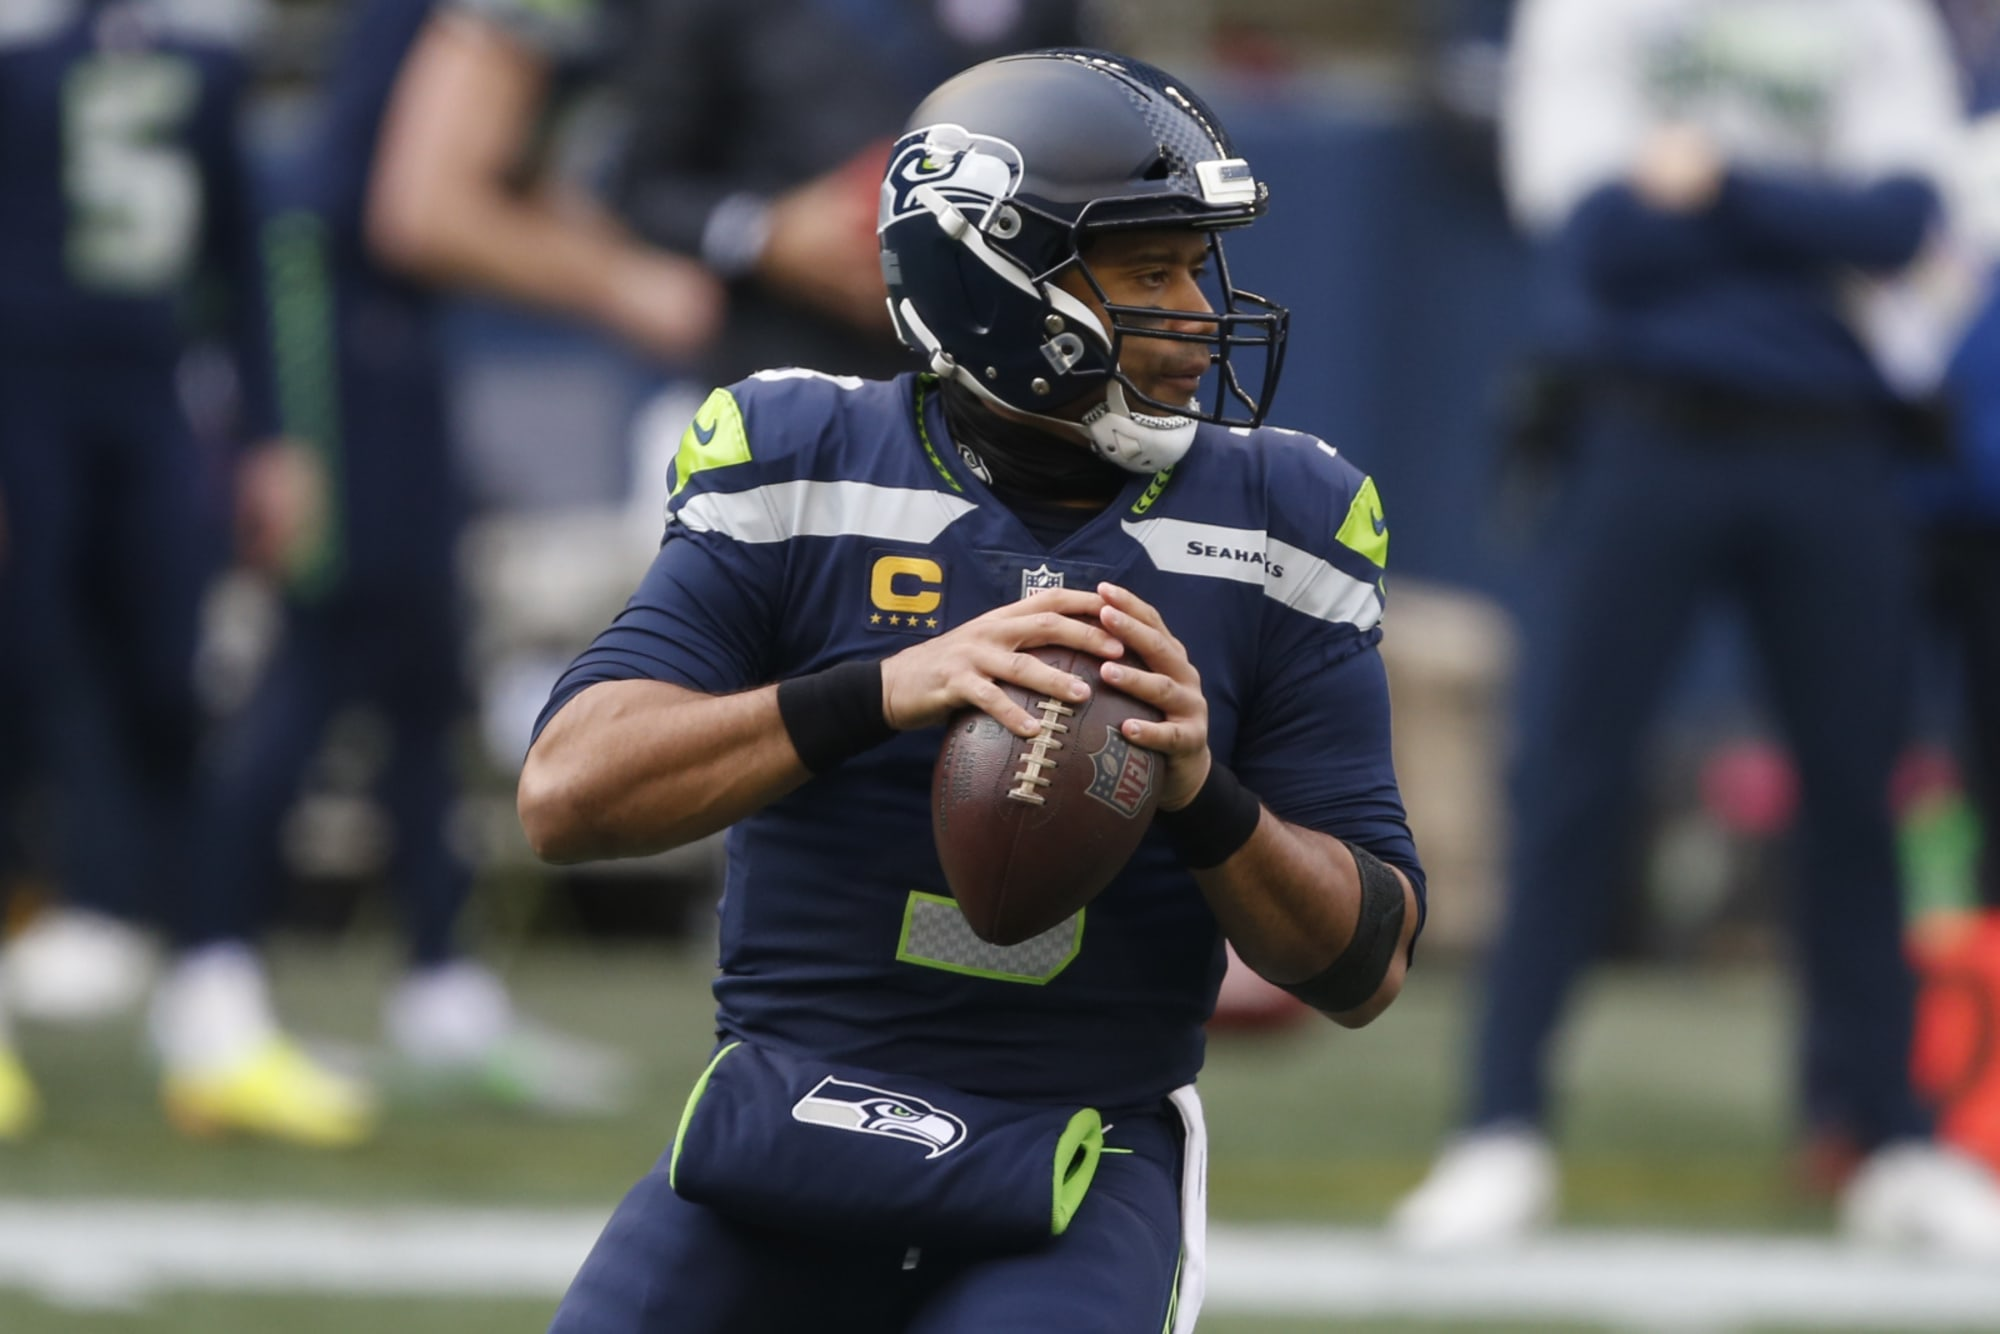 NY Jets among teams linked to possible Russell Wilson trade